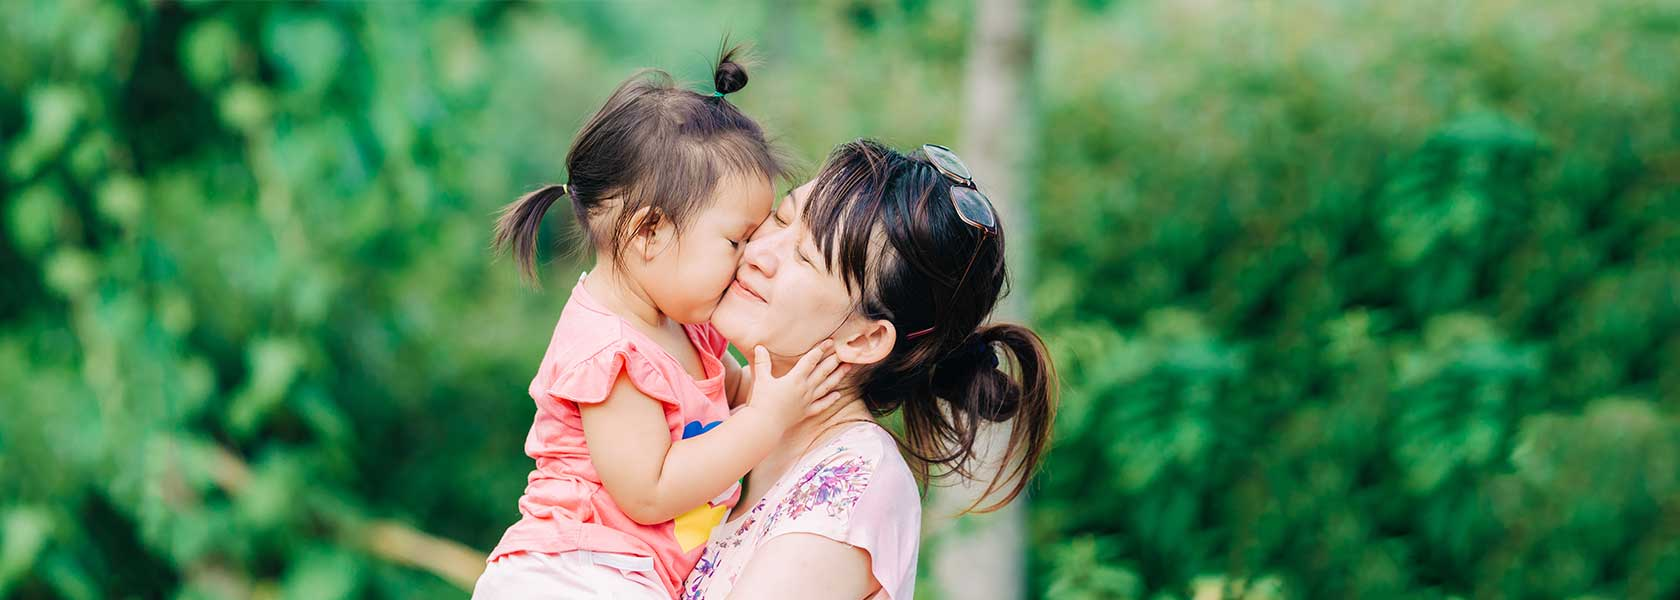 Mother carrying daughter in park